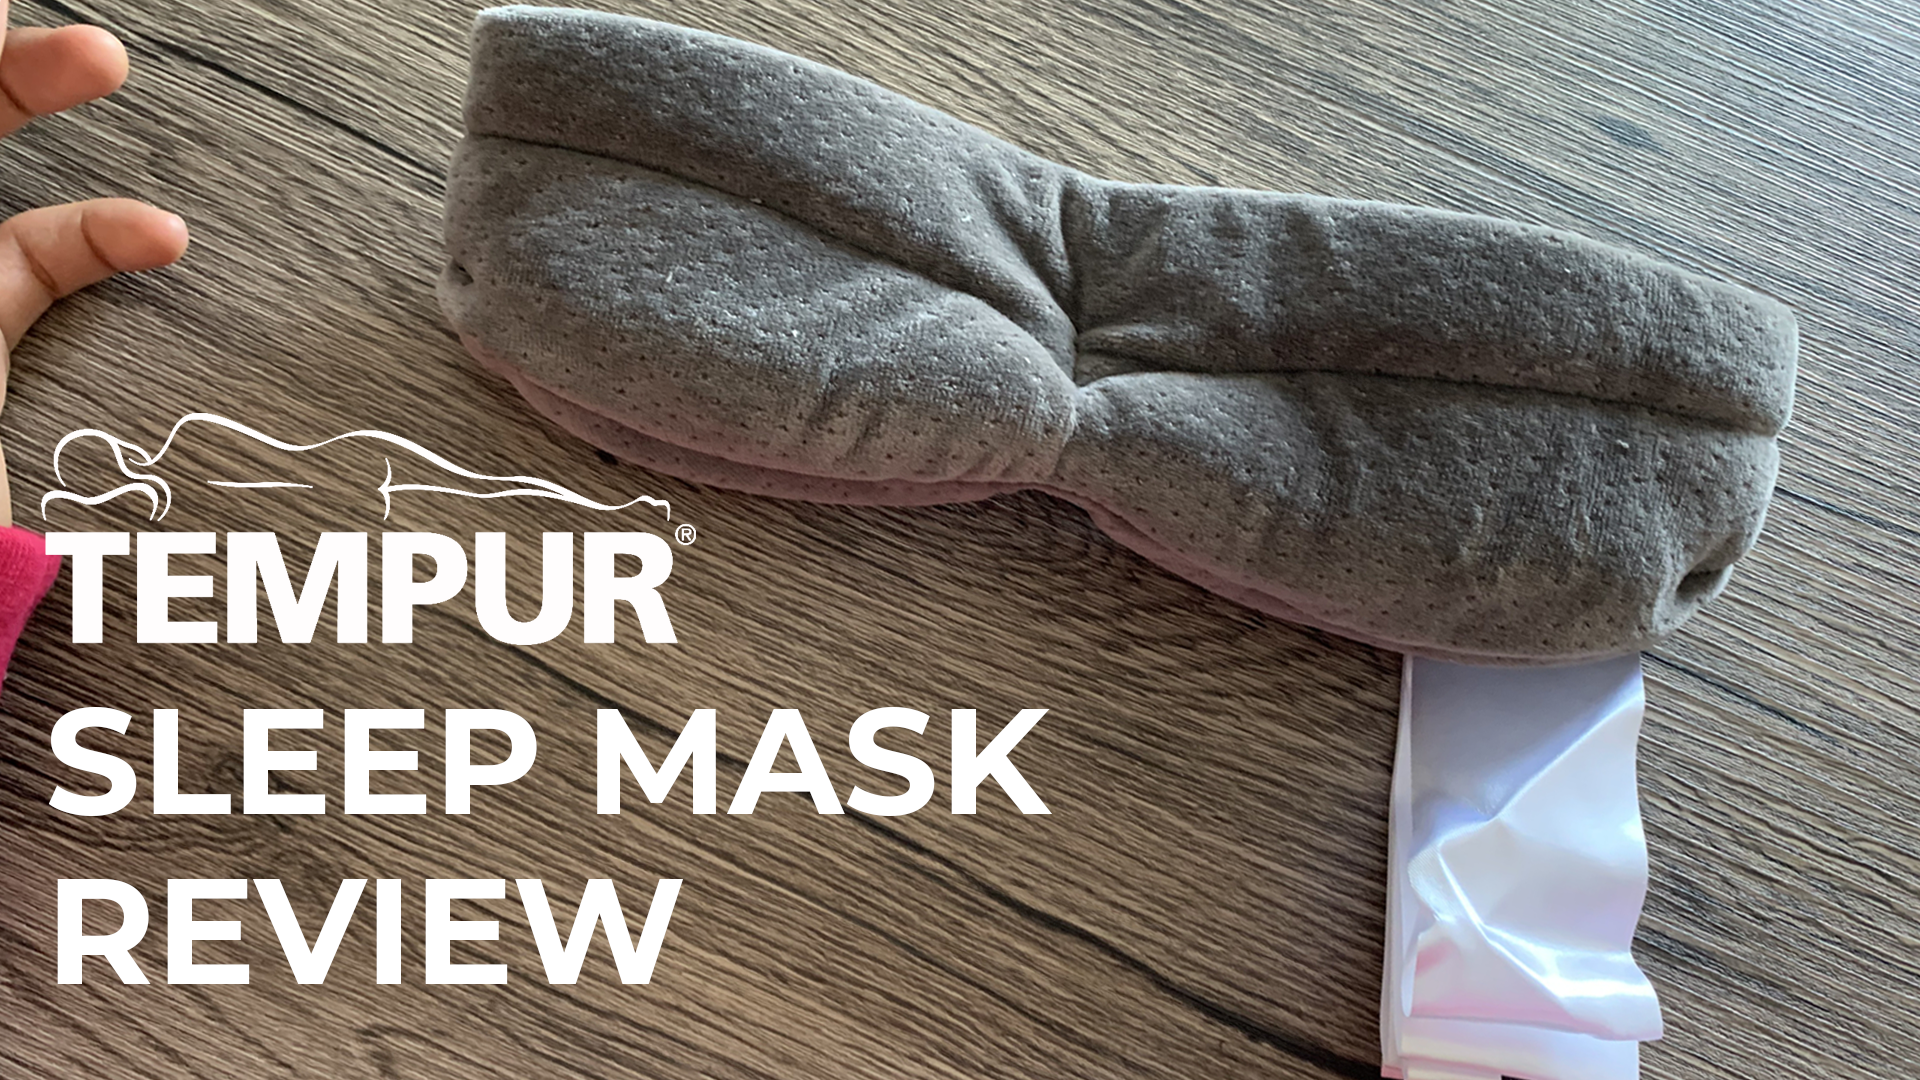 Tempur Sleep Mask Review